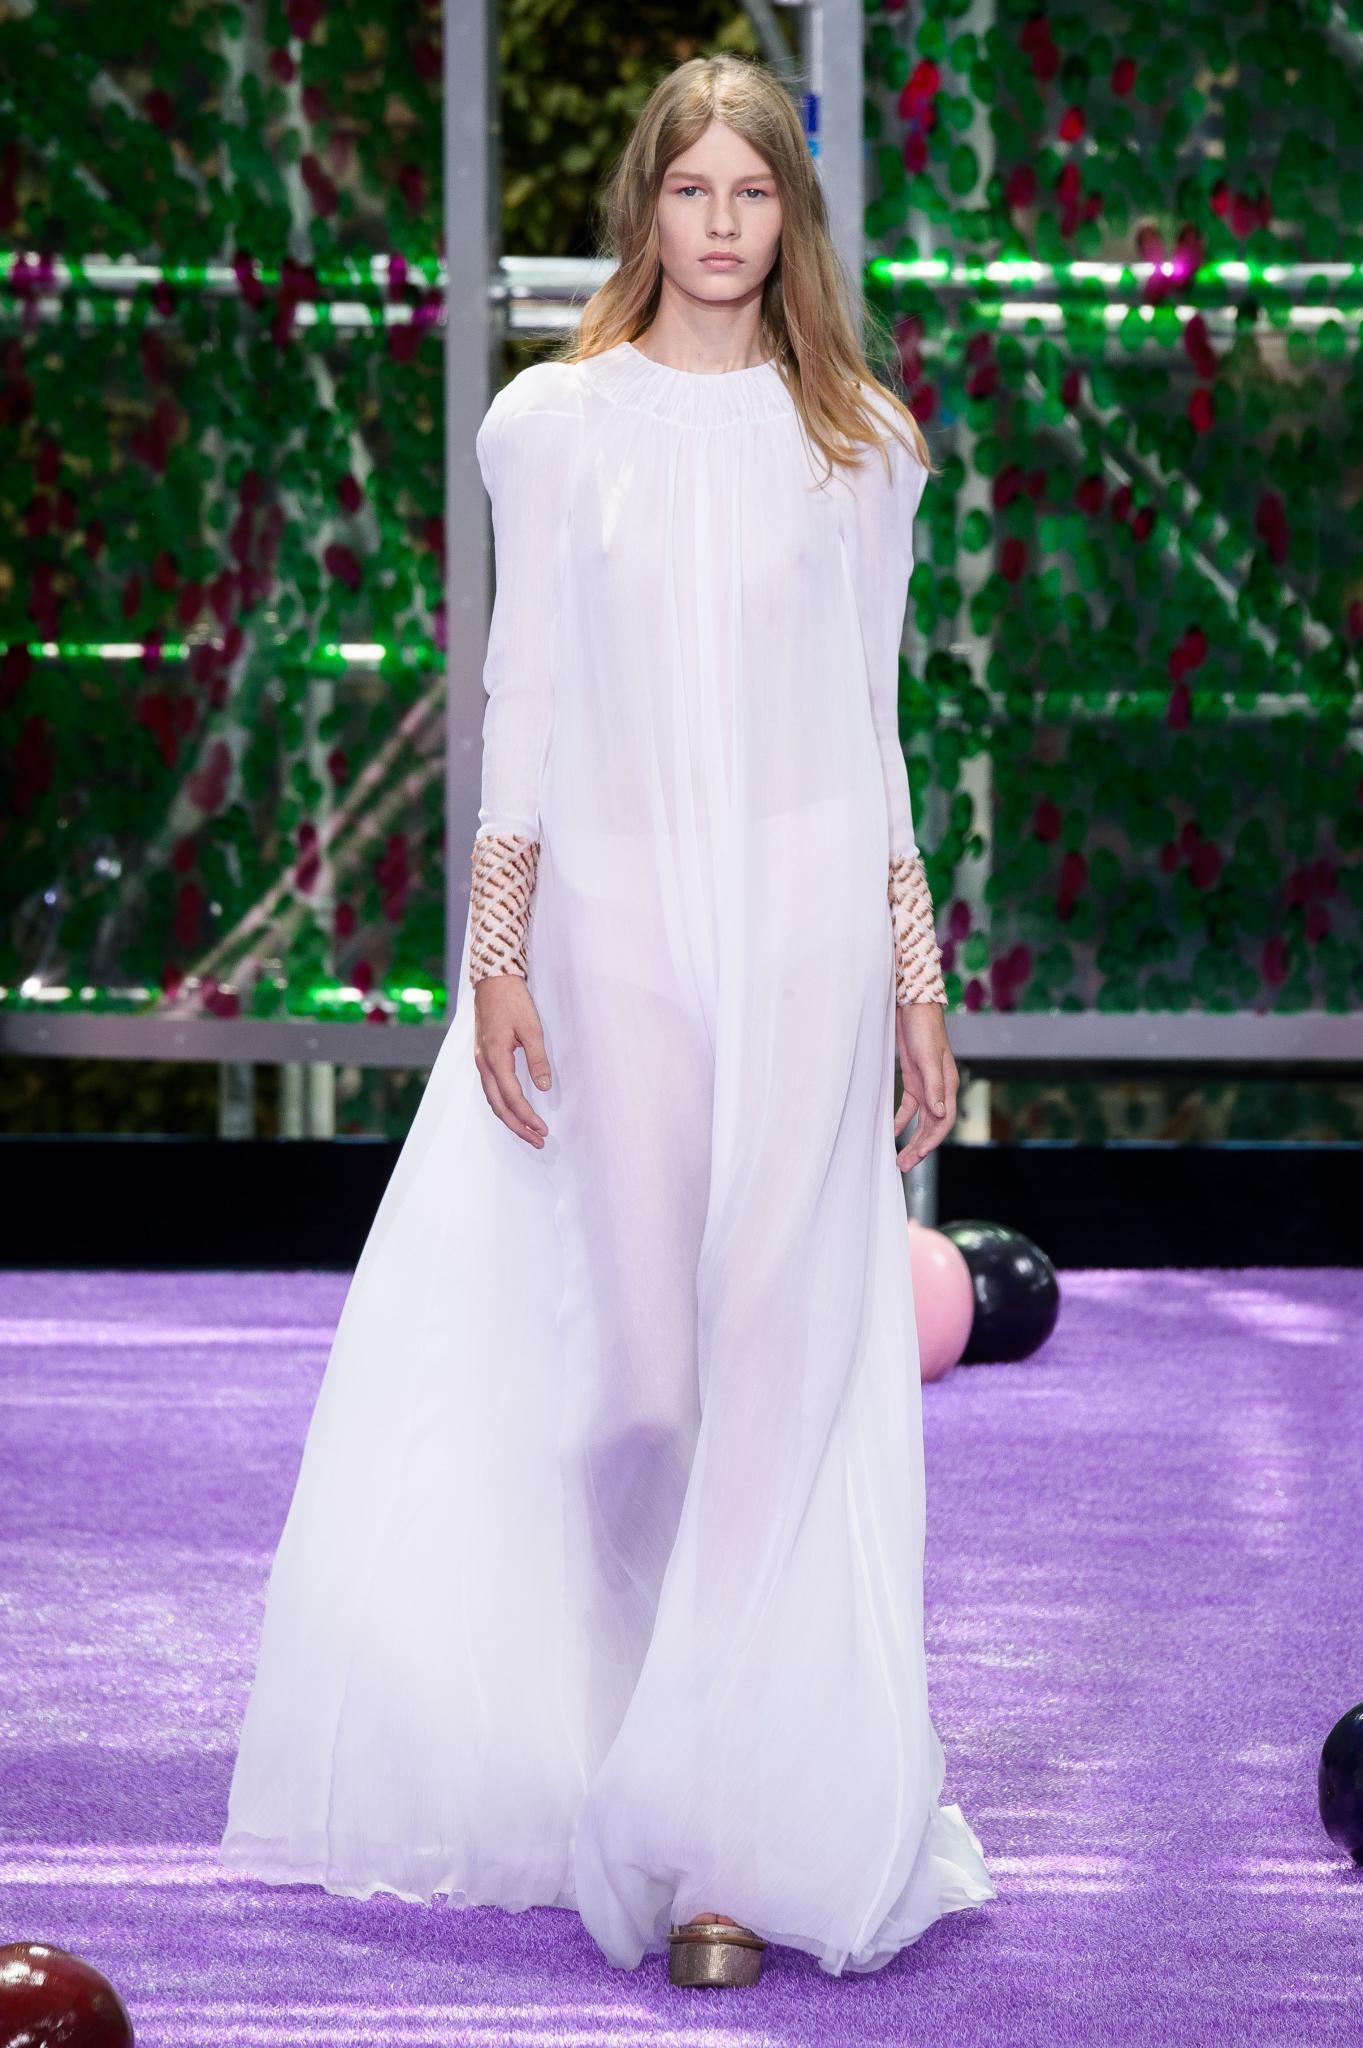 <p>Held in a custom-made kaleidoscope-like venue in Paris, Raf Simons' latest Dior collection showcases lust-worthy coats, glittery platforms and sheer delights.</p>